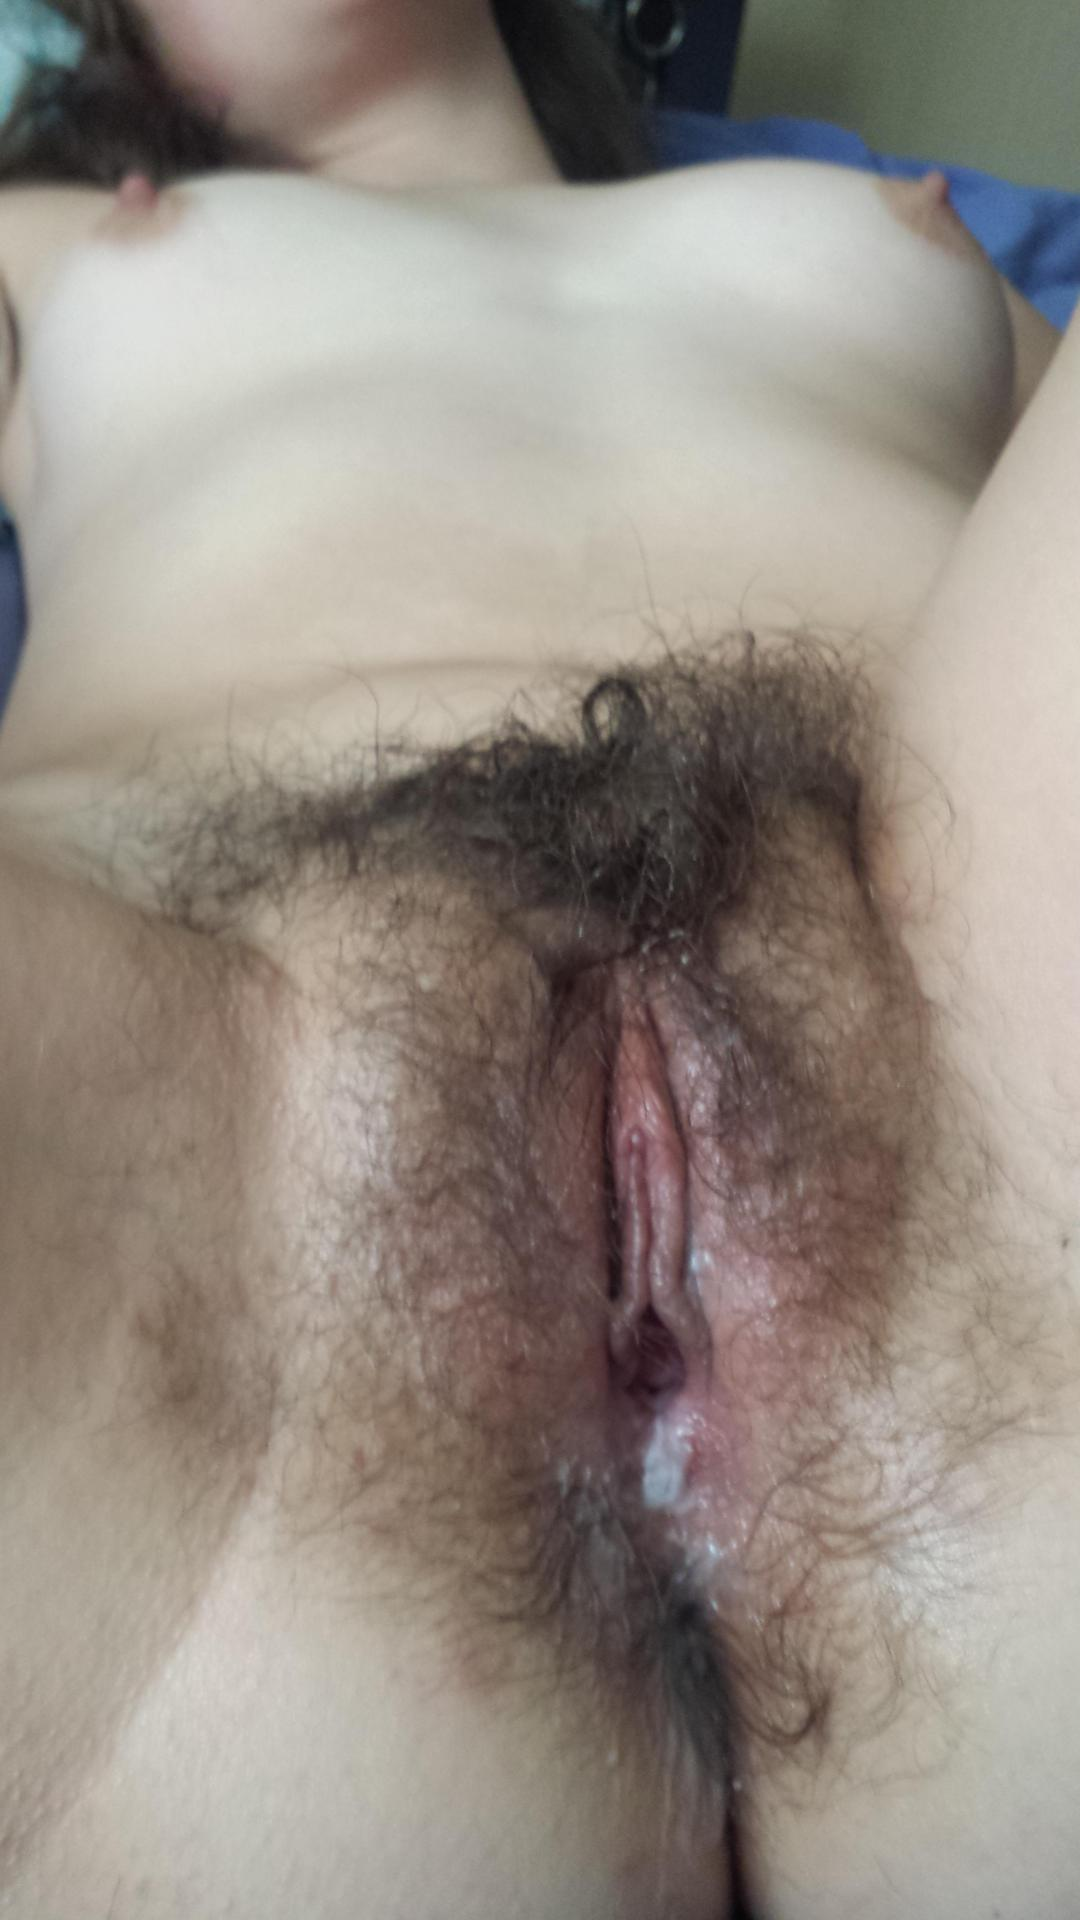 horny French maid threesome love fuck. I'm looking